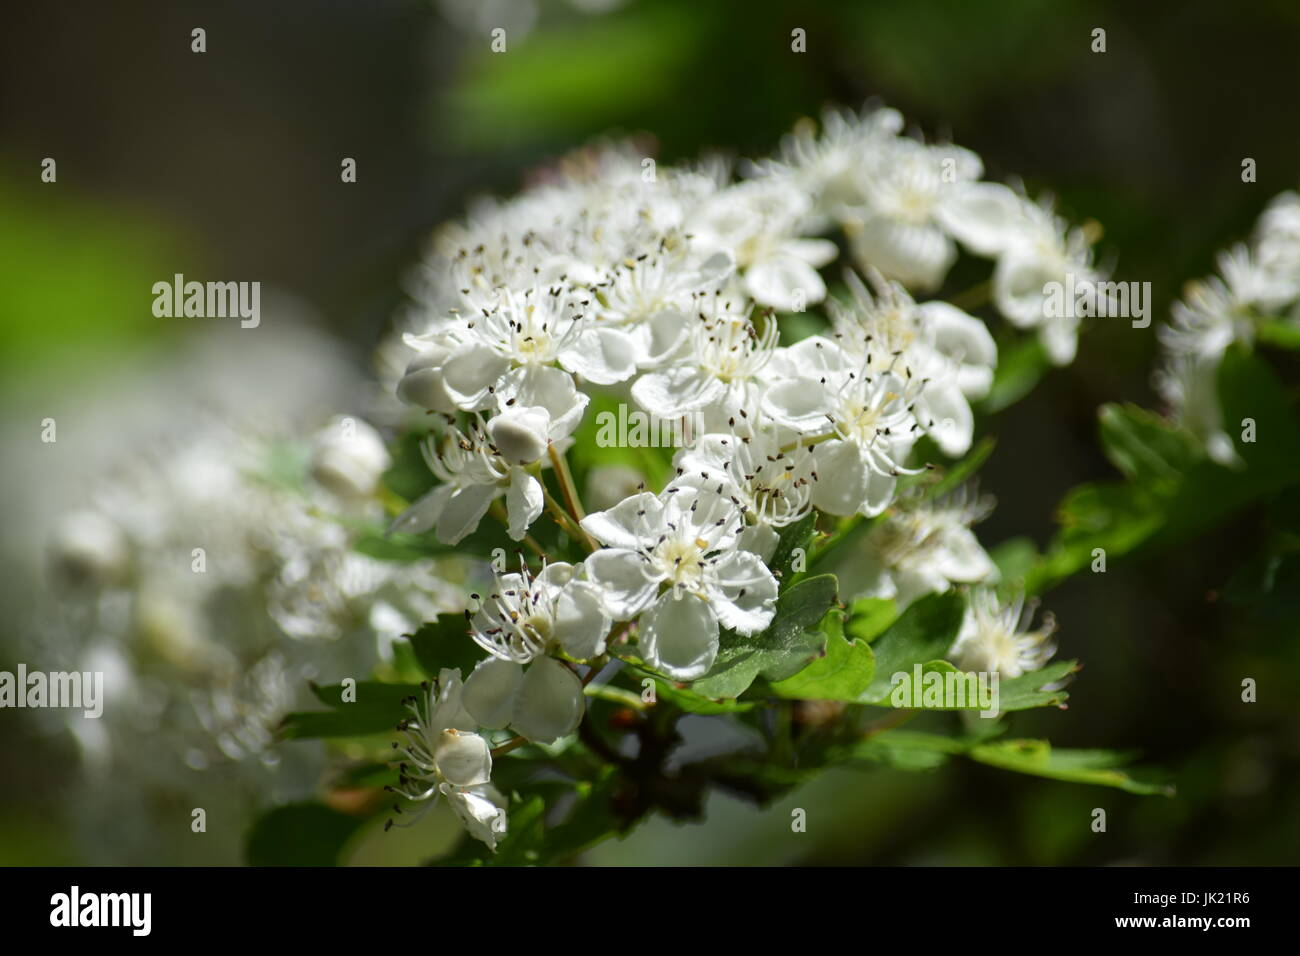 White flowered bush backgrounds stock photo 149406746 alamy white flowered bush backgrounds mightylinksfo